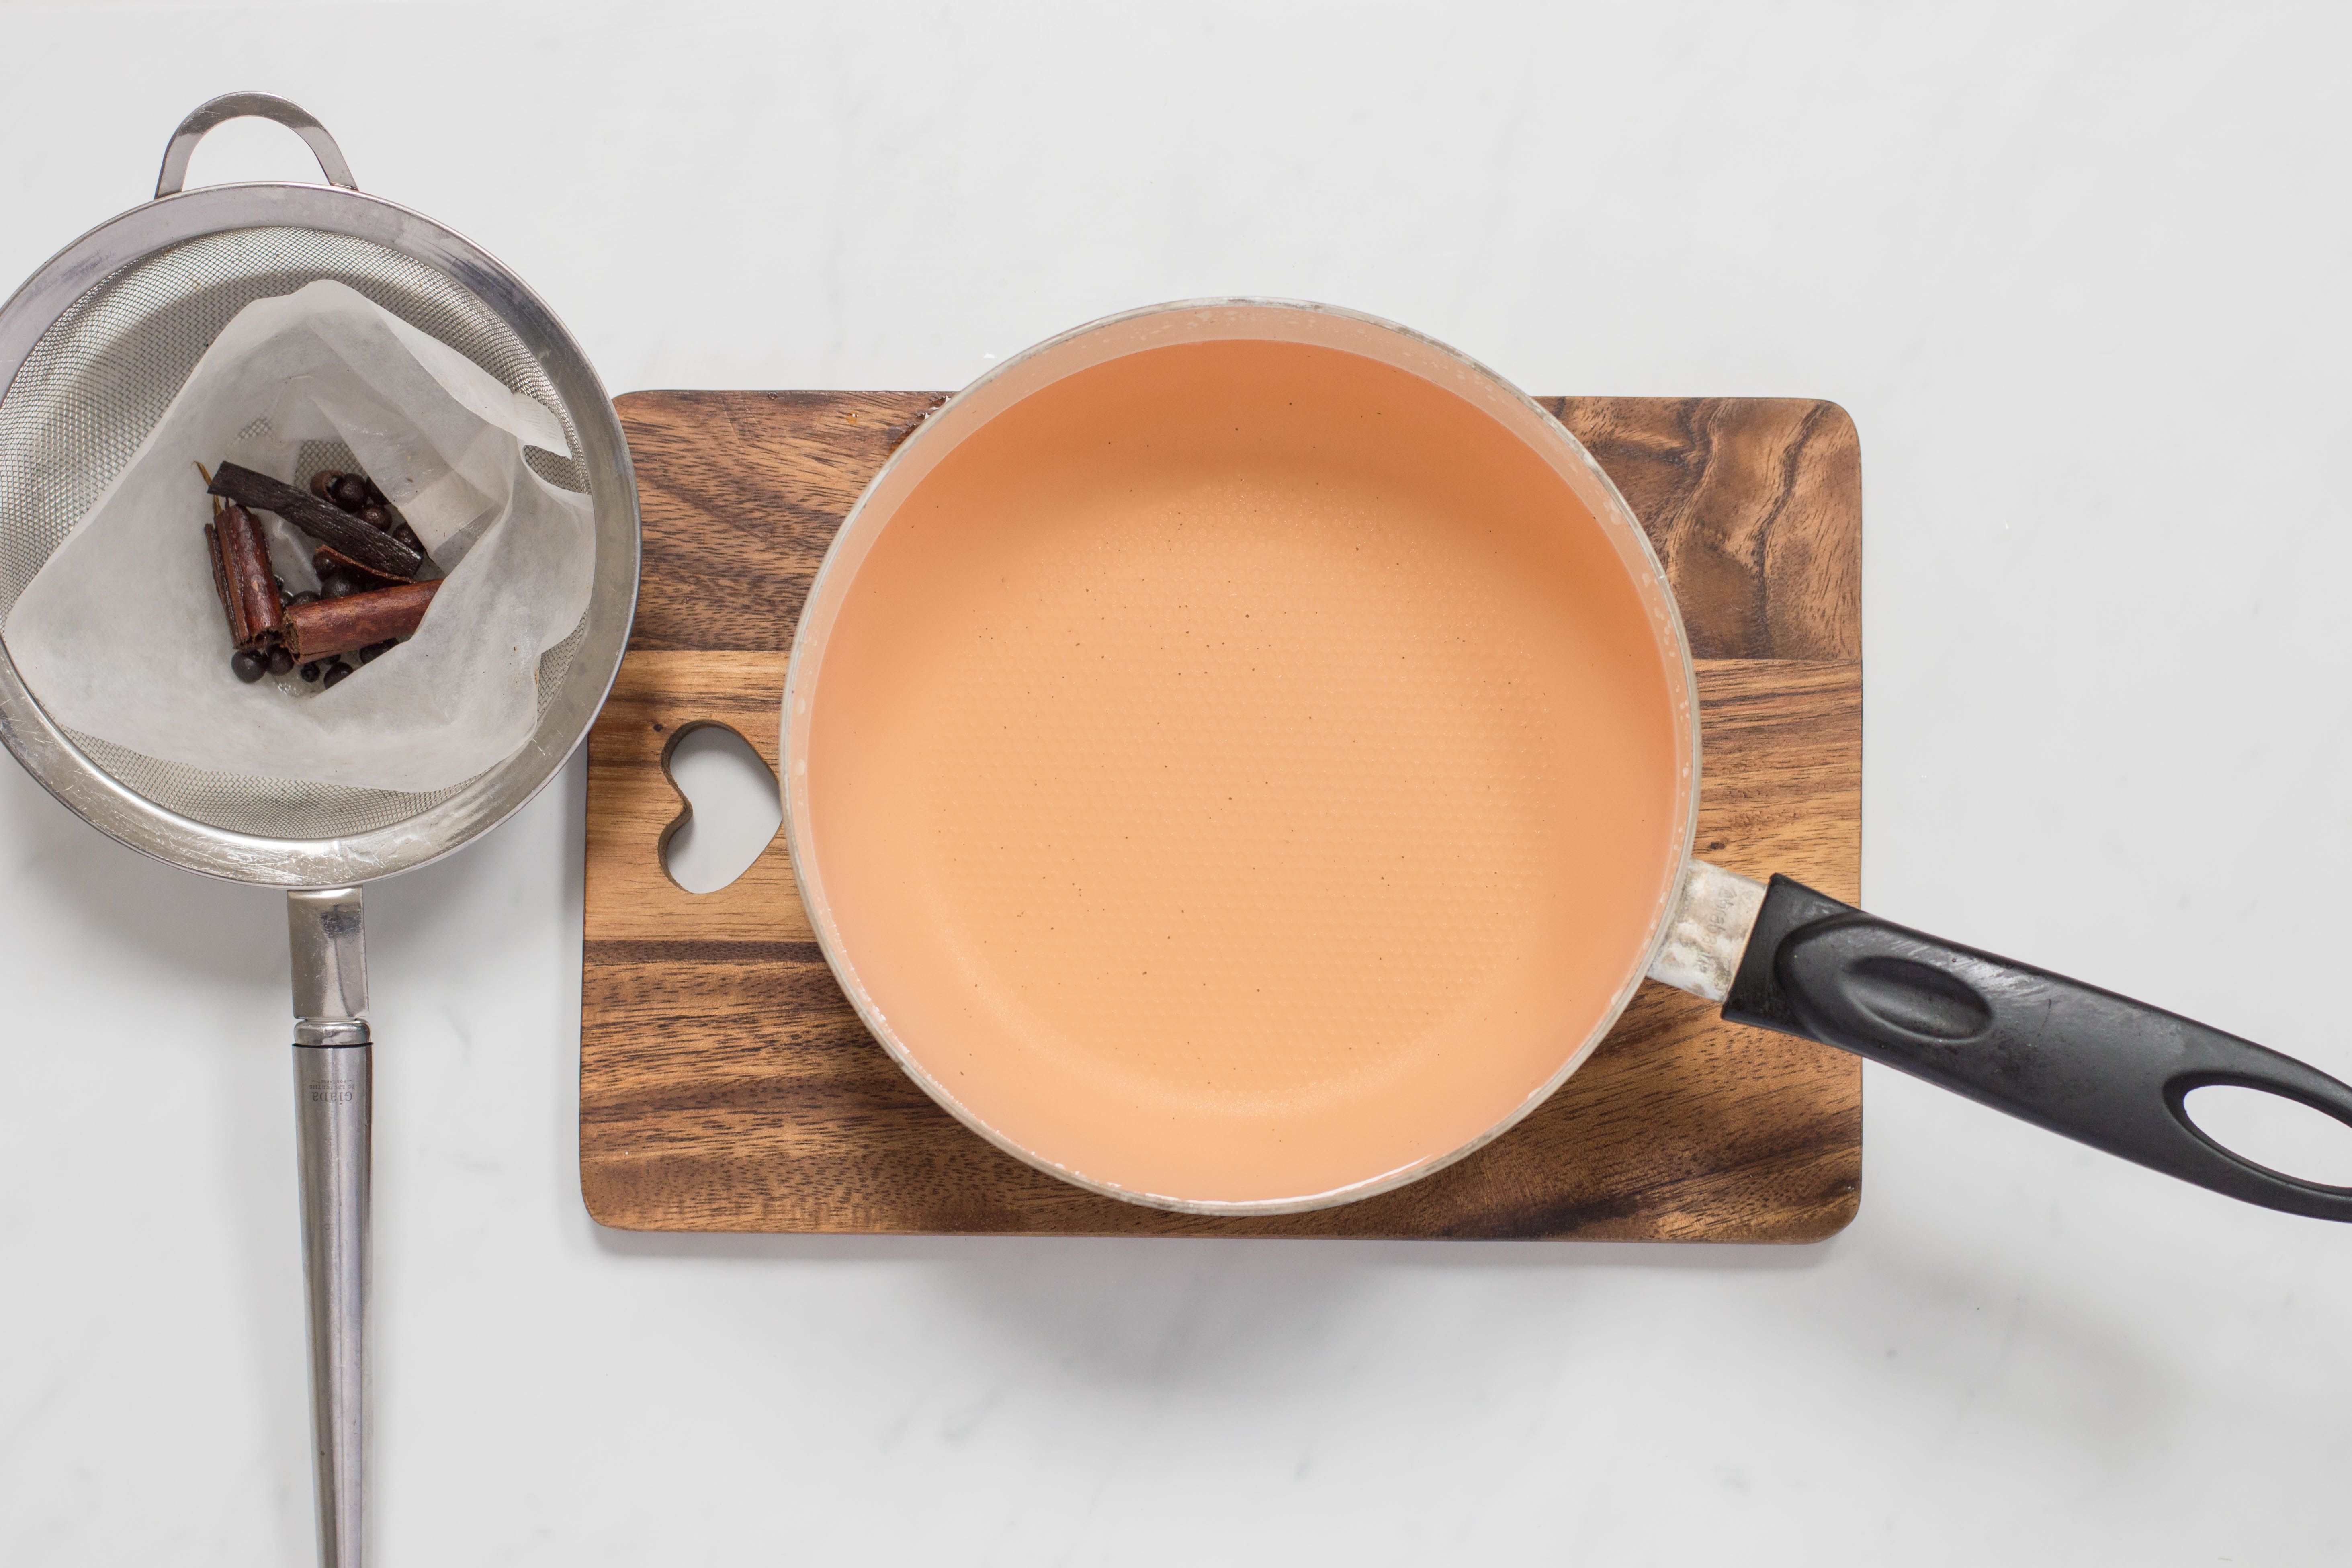 Strain the simple syrup